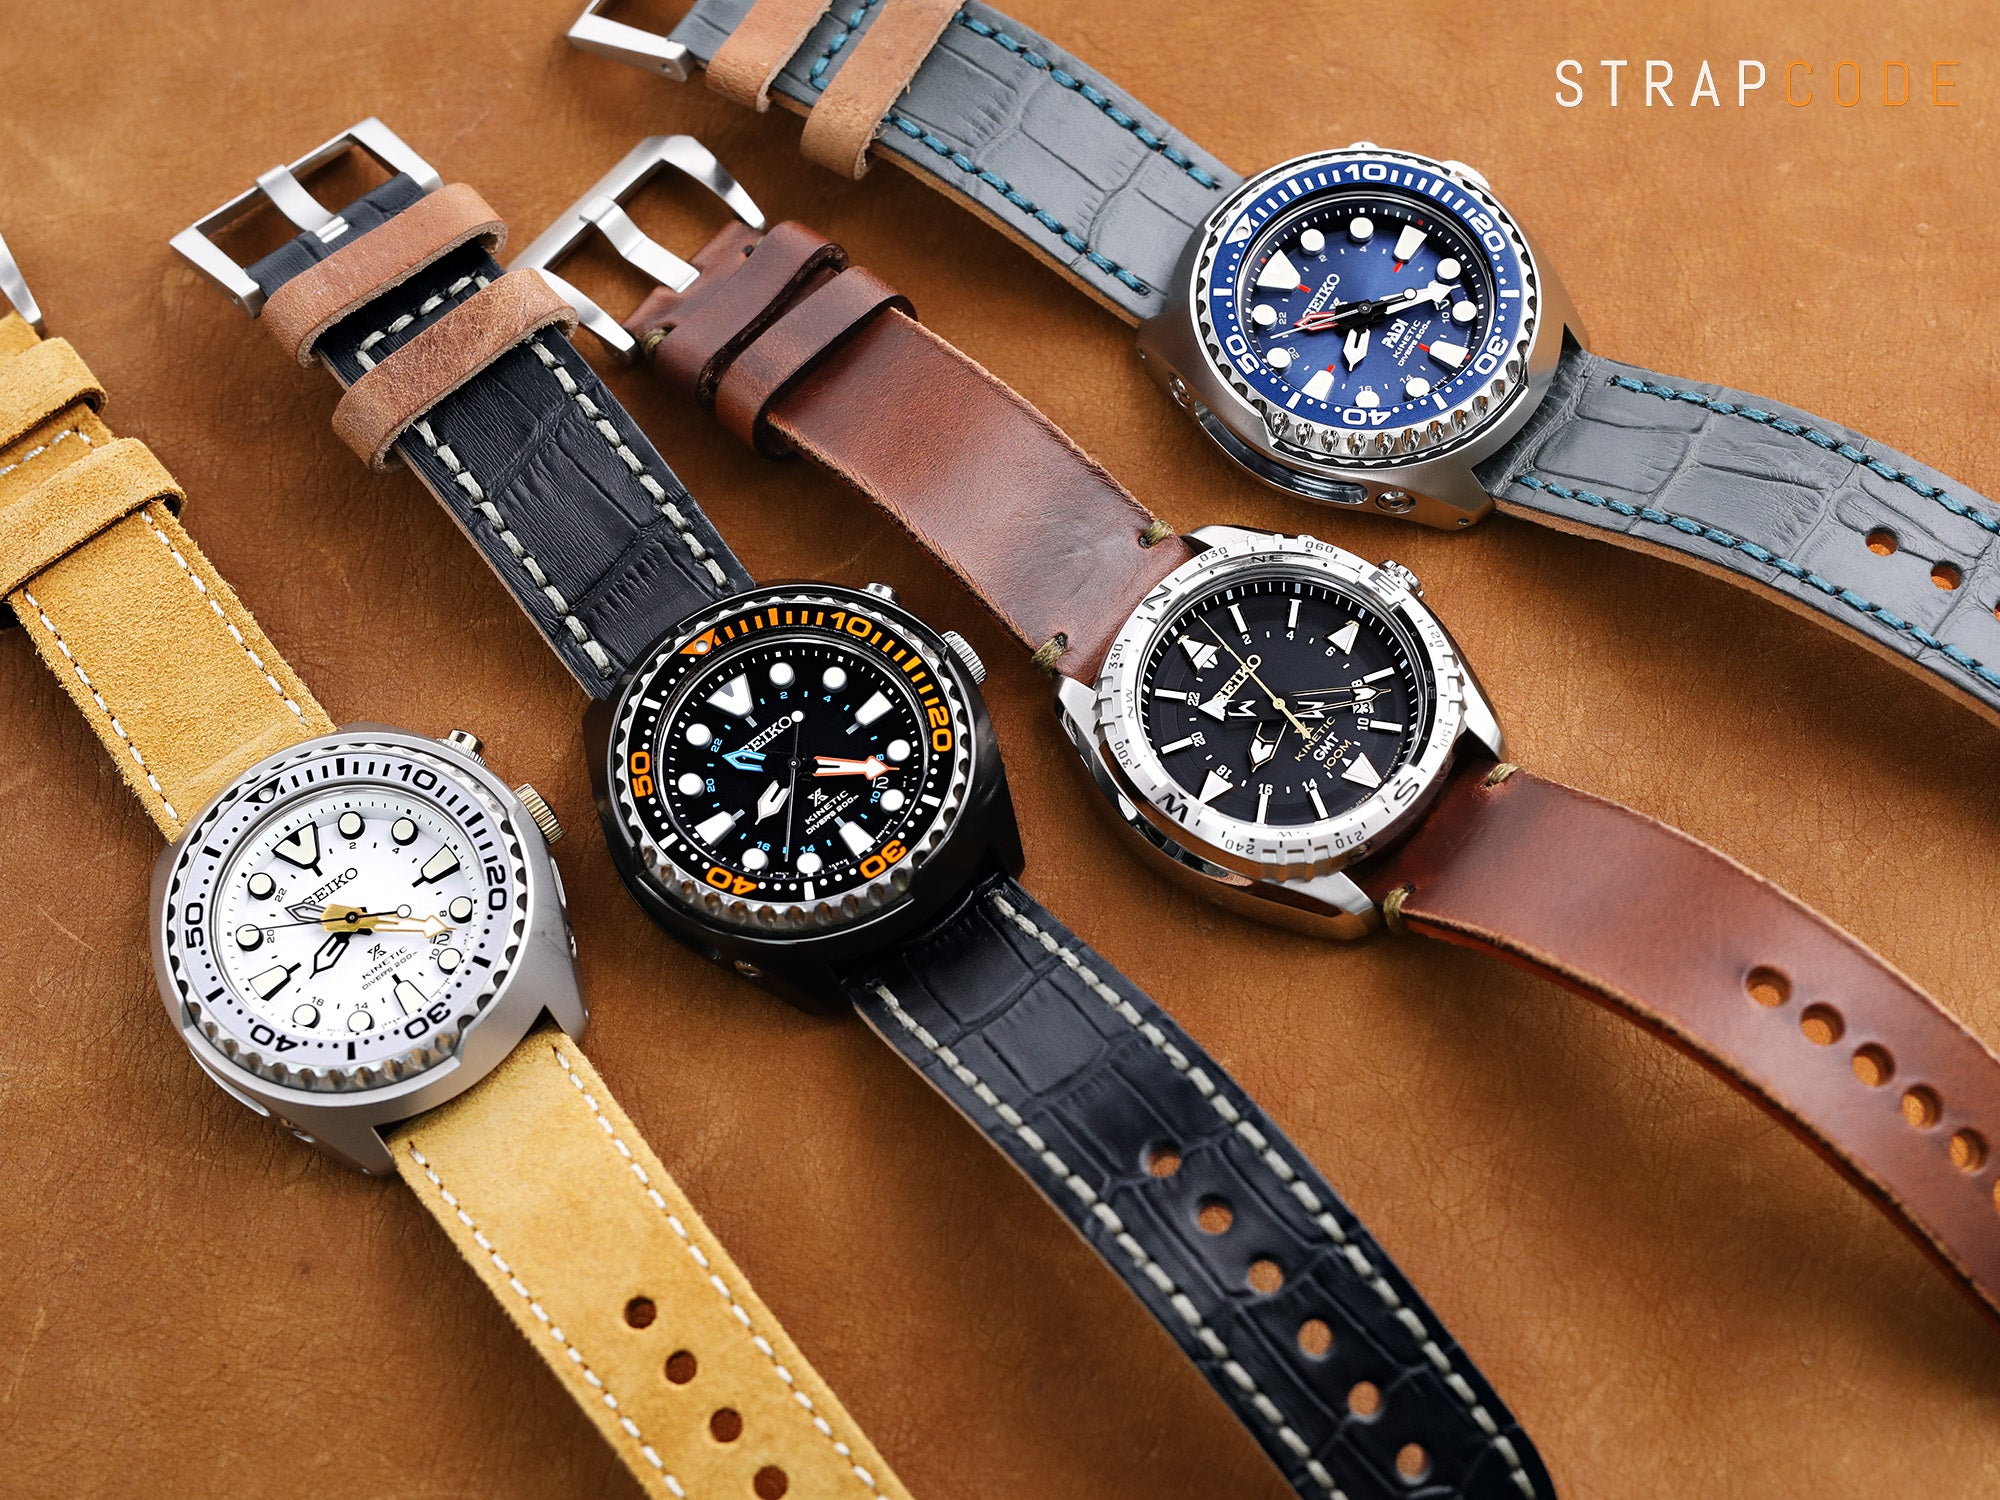 W_Seiko-Kinetic-watch-leather-watch-strap-strapcode-watch-bands